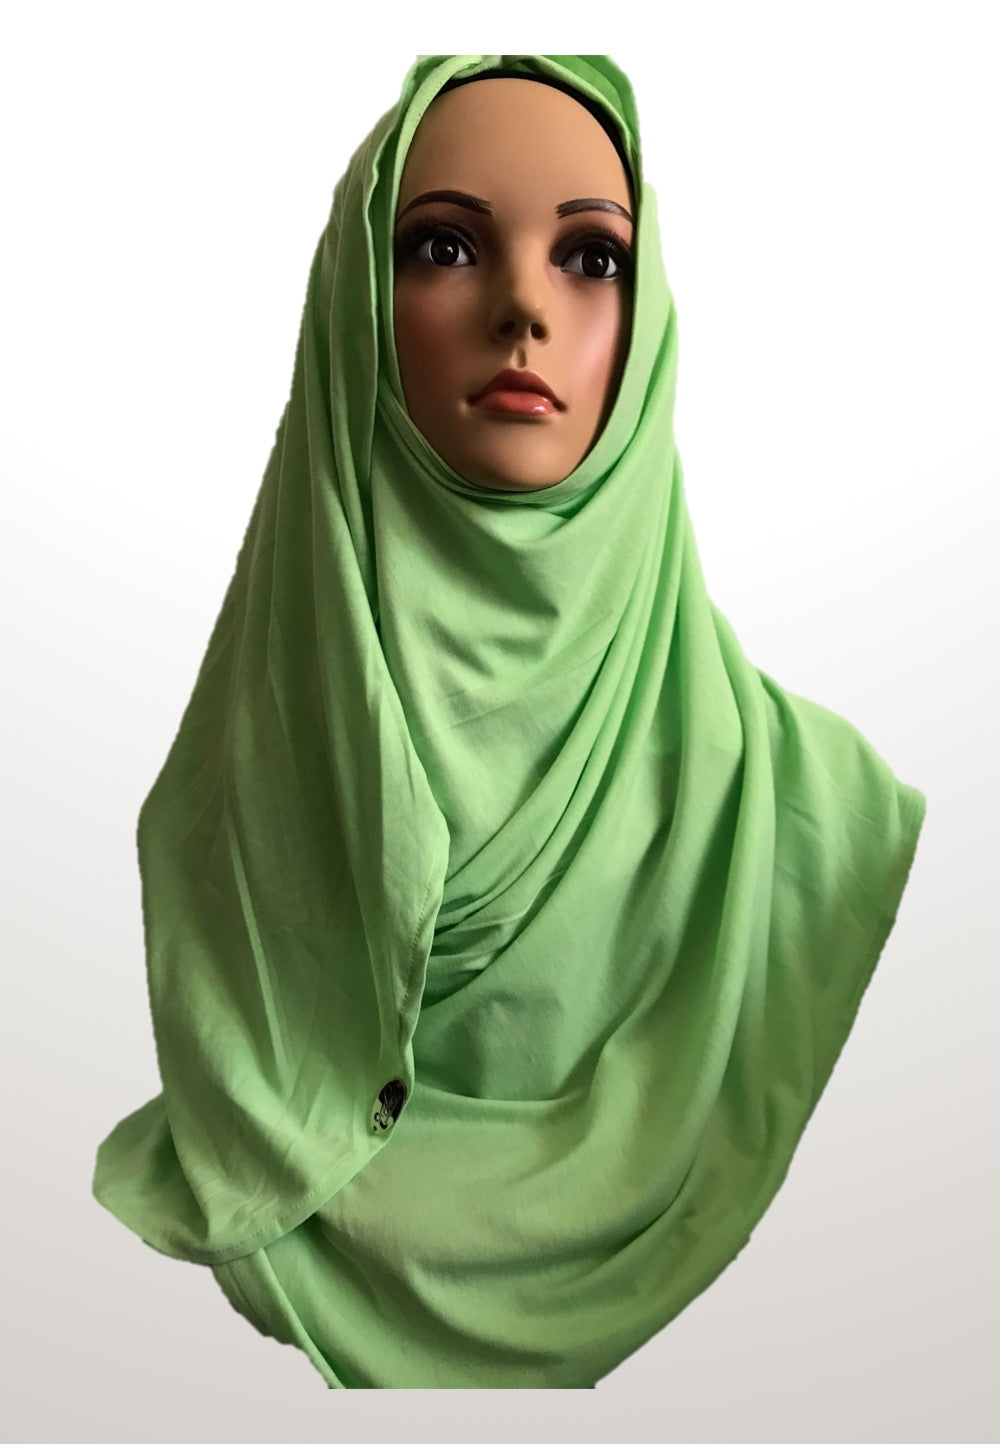 Lemon lime stretchy (COT) instant hijab CF